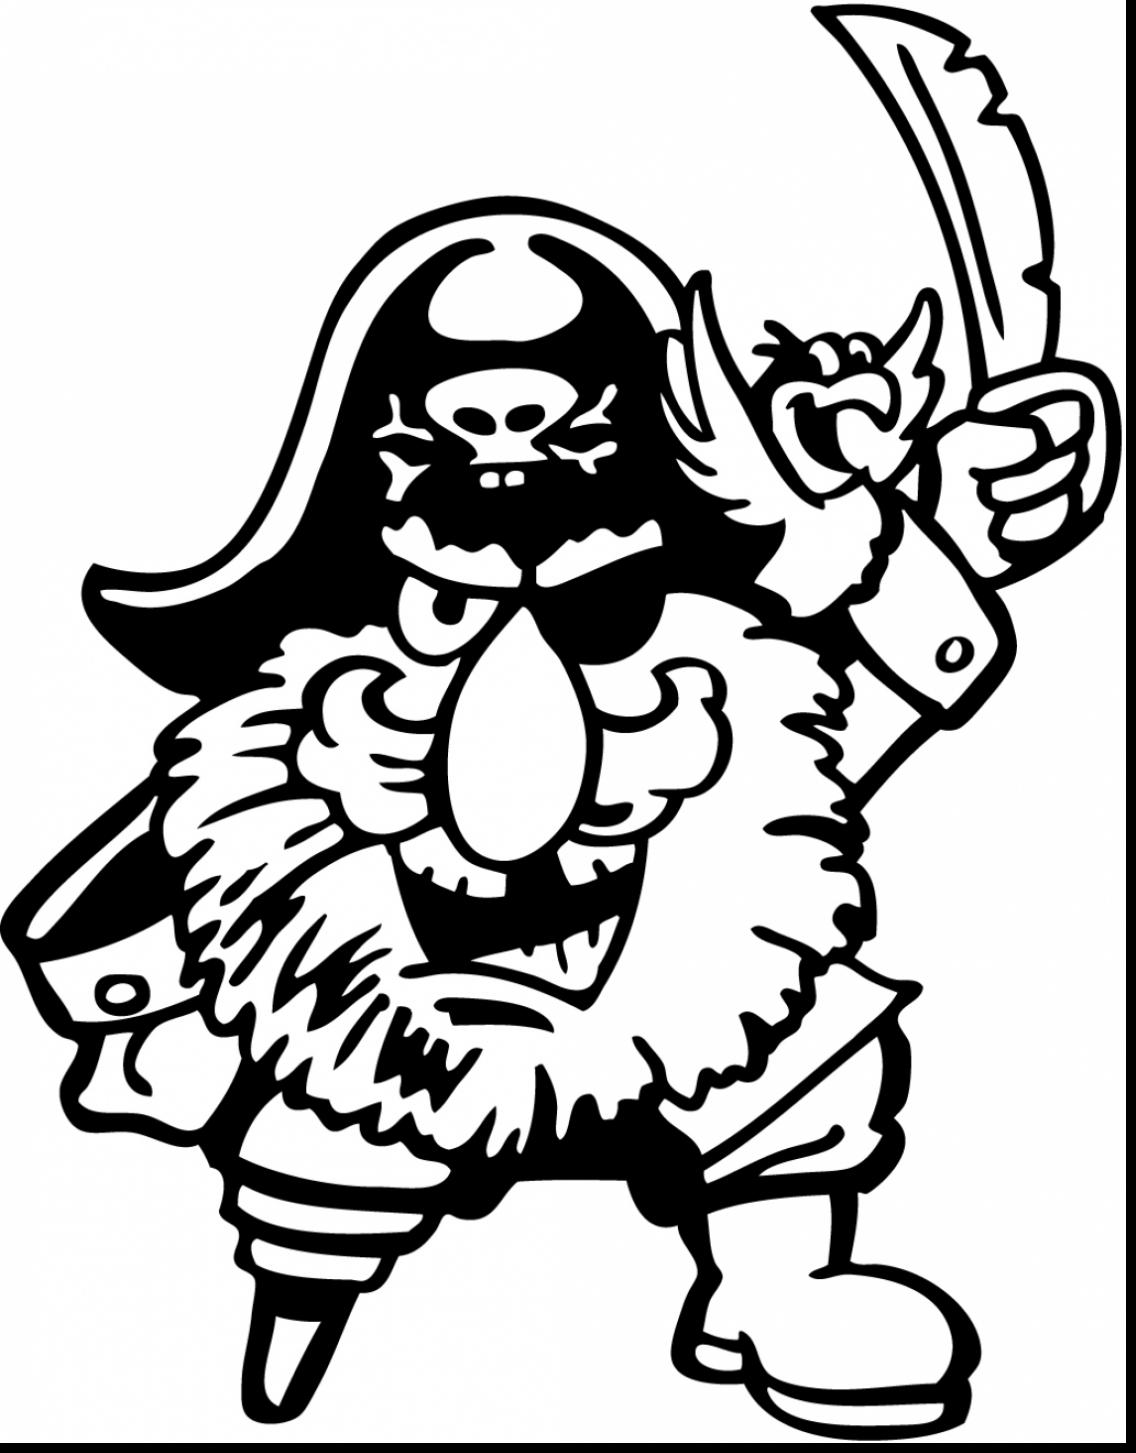 1136x1453 Excellent Kids Pirate Coloring Pages Printable With Pirate